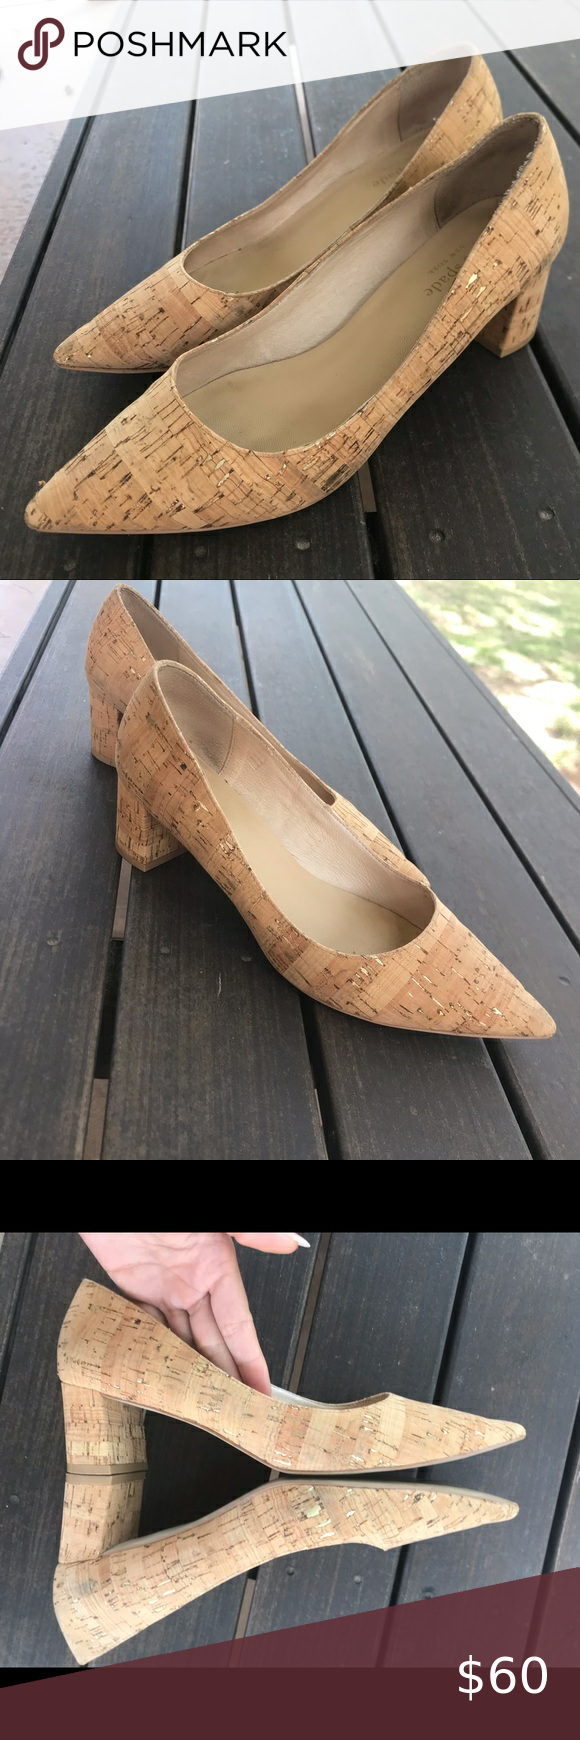 Kate Spade Cork Gold Fleck Kitten Heel Pumps In 2020 Kitten Heel Pumps Pumps Heels Shoes Women Heels